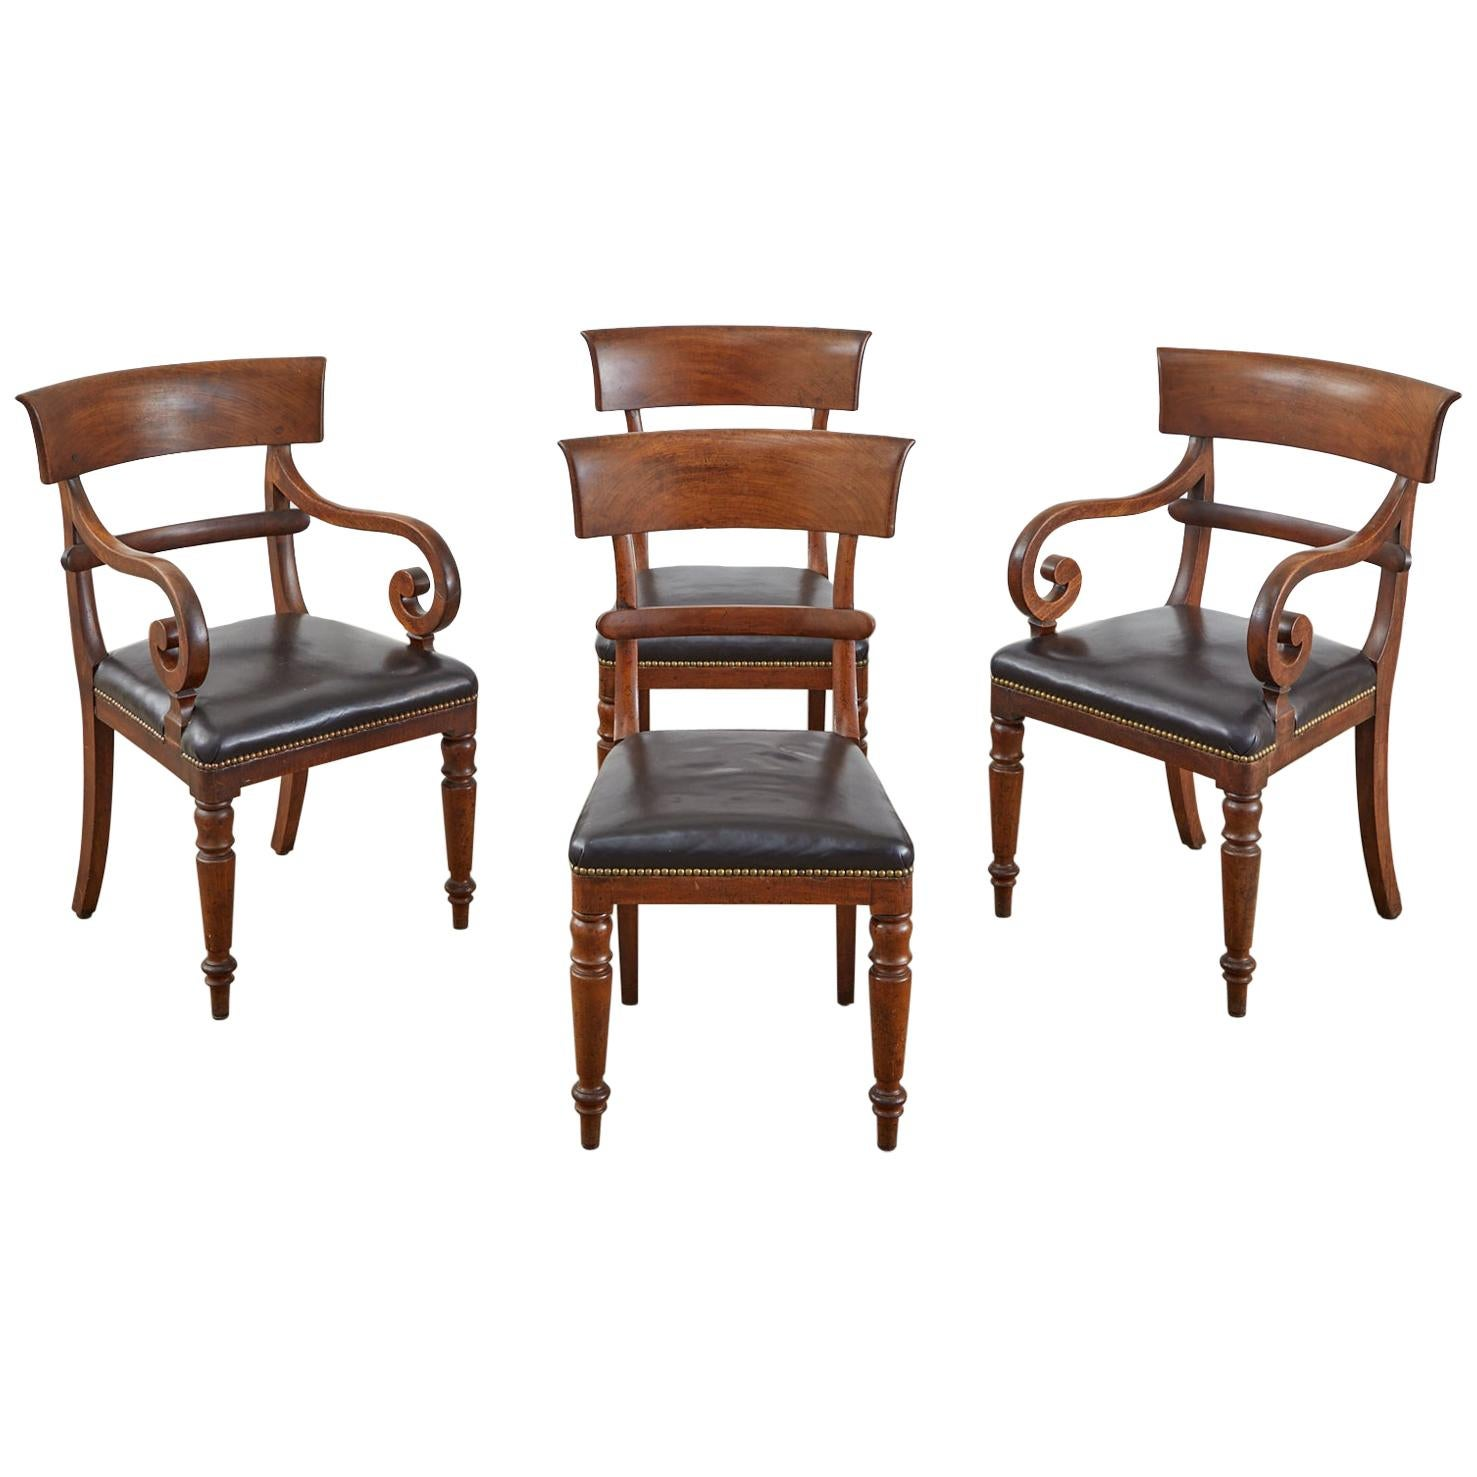 Set of Four English Regency Mahogany Dining Chairs